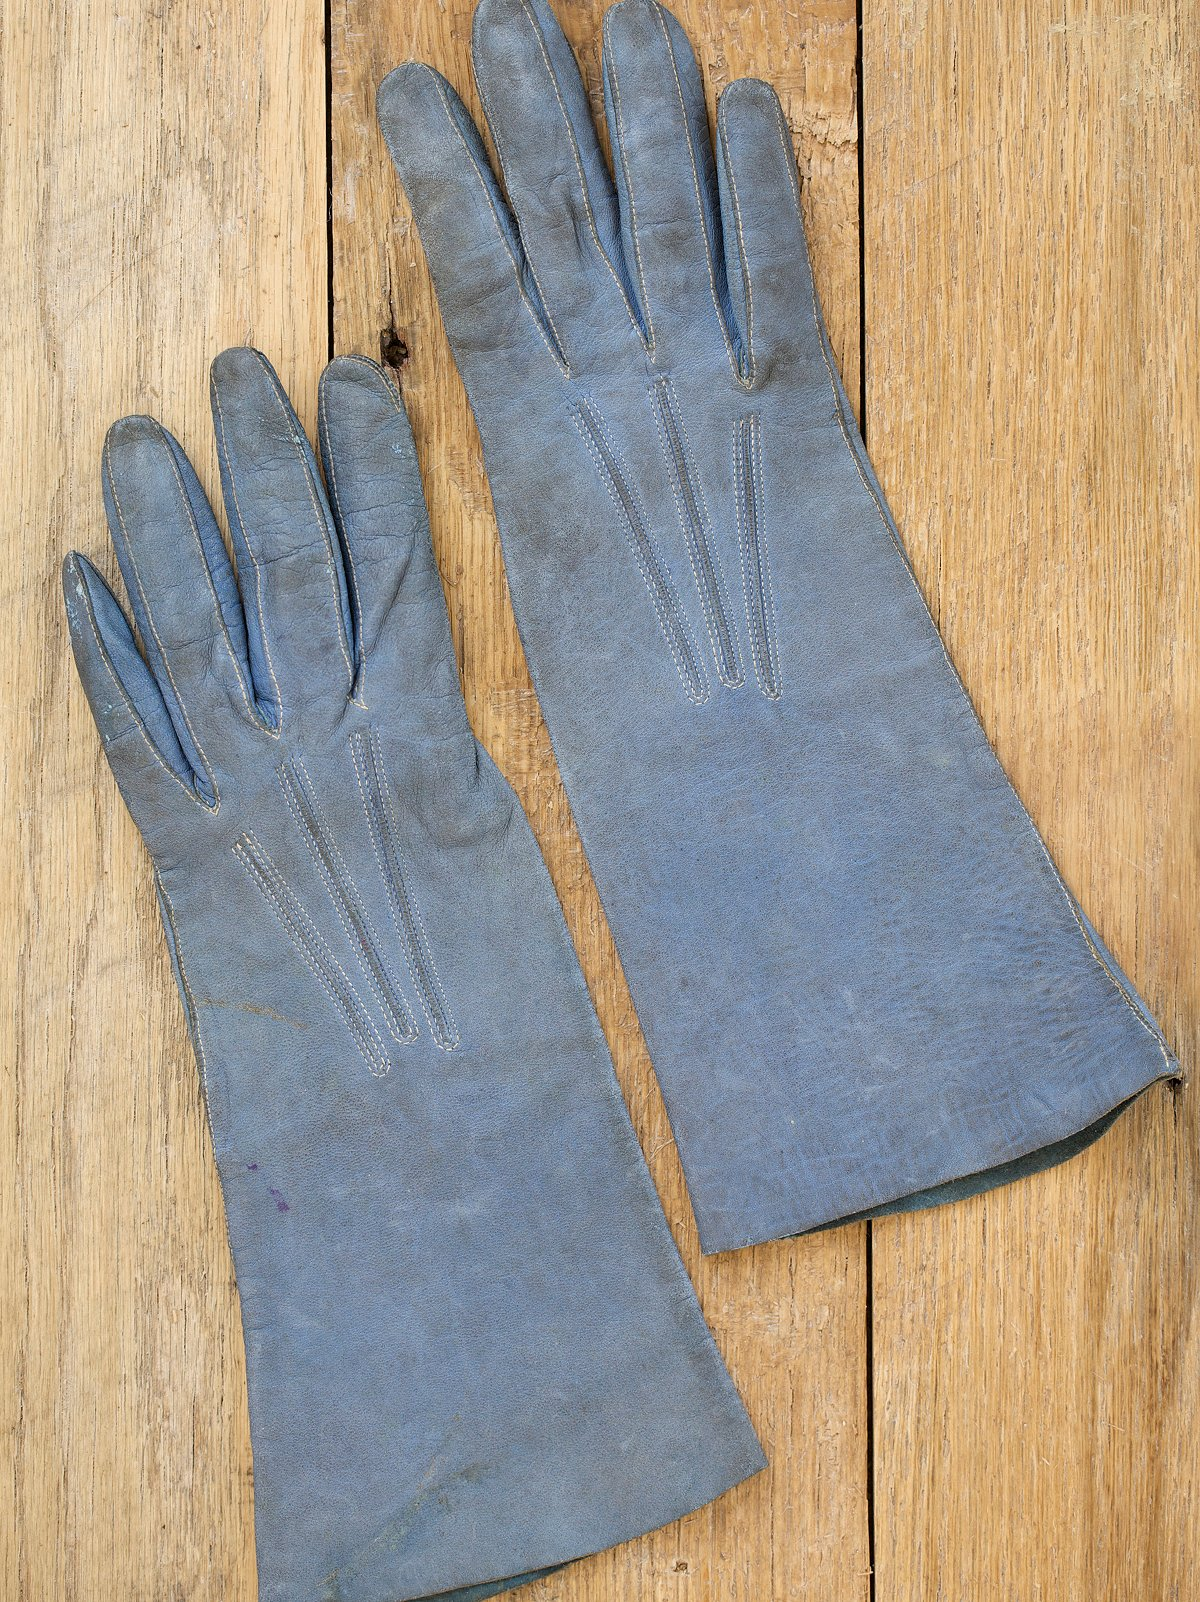 Vintage 1920s Long Leather Gloves